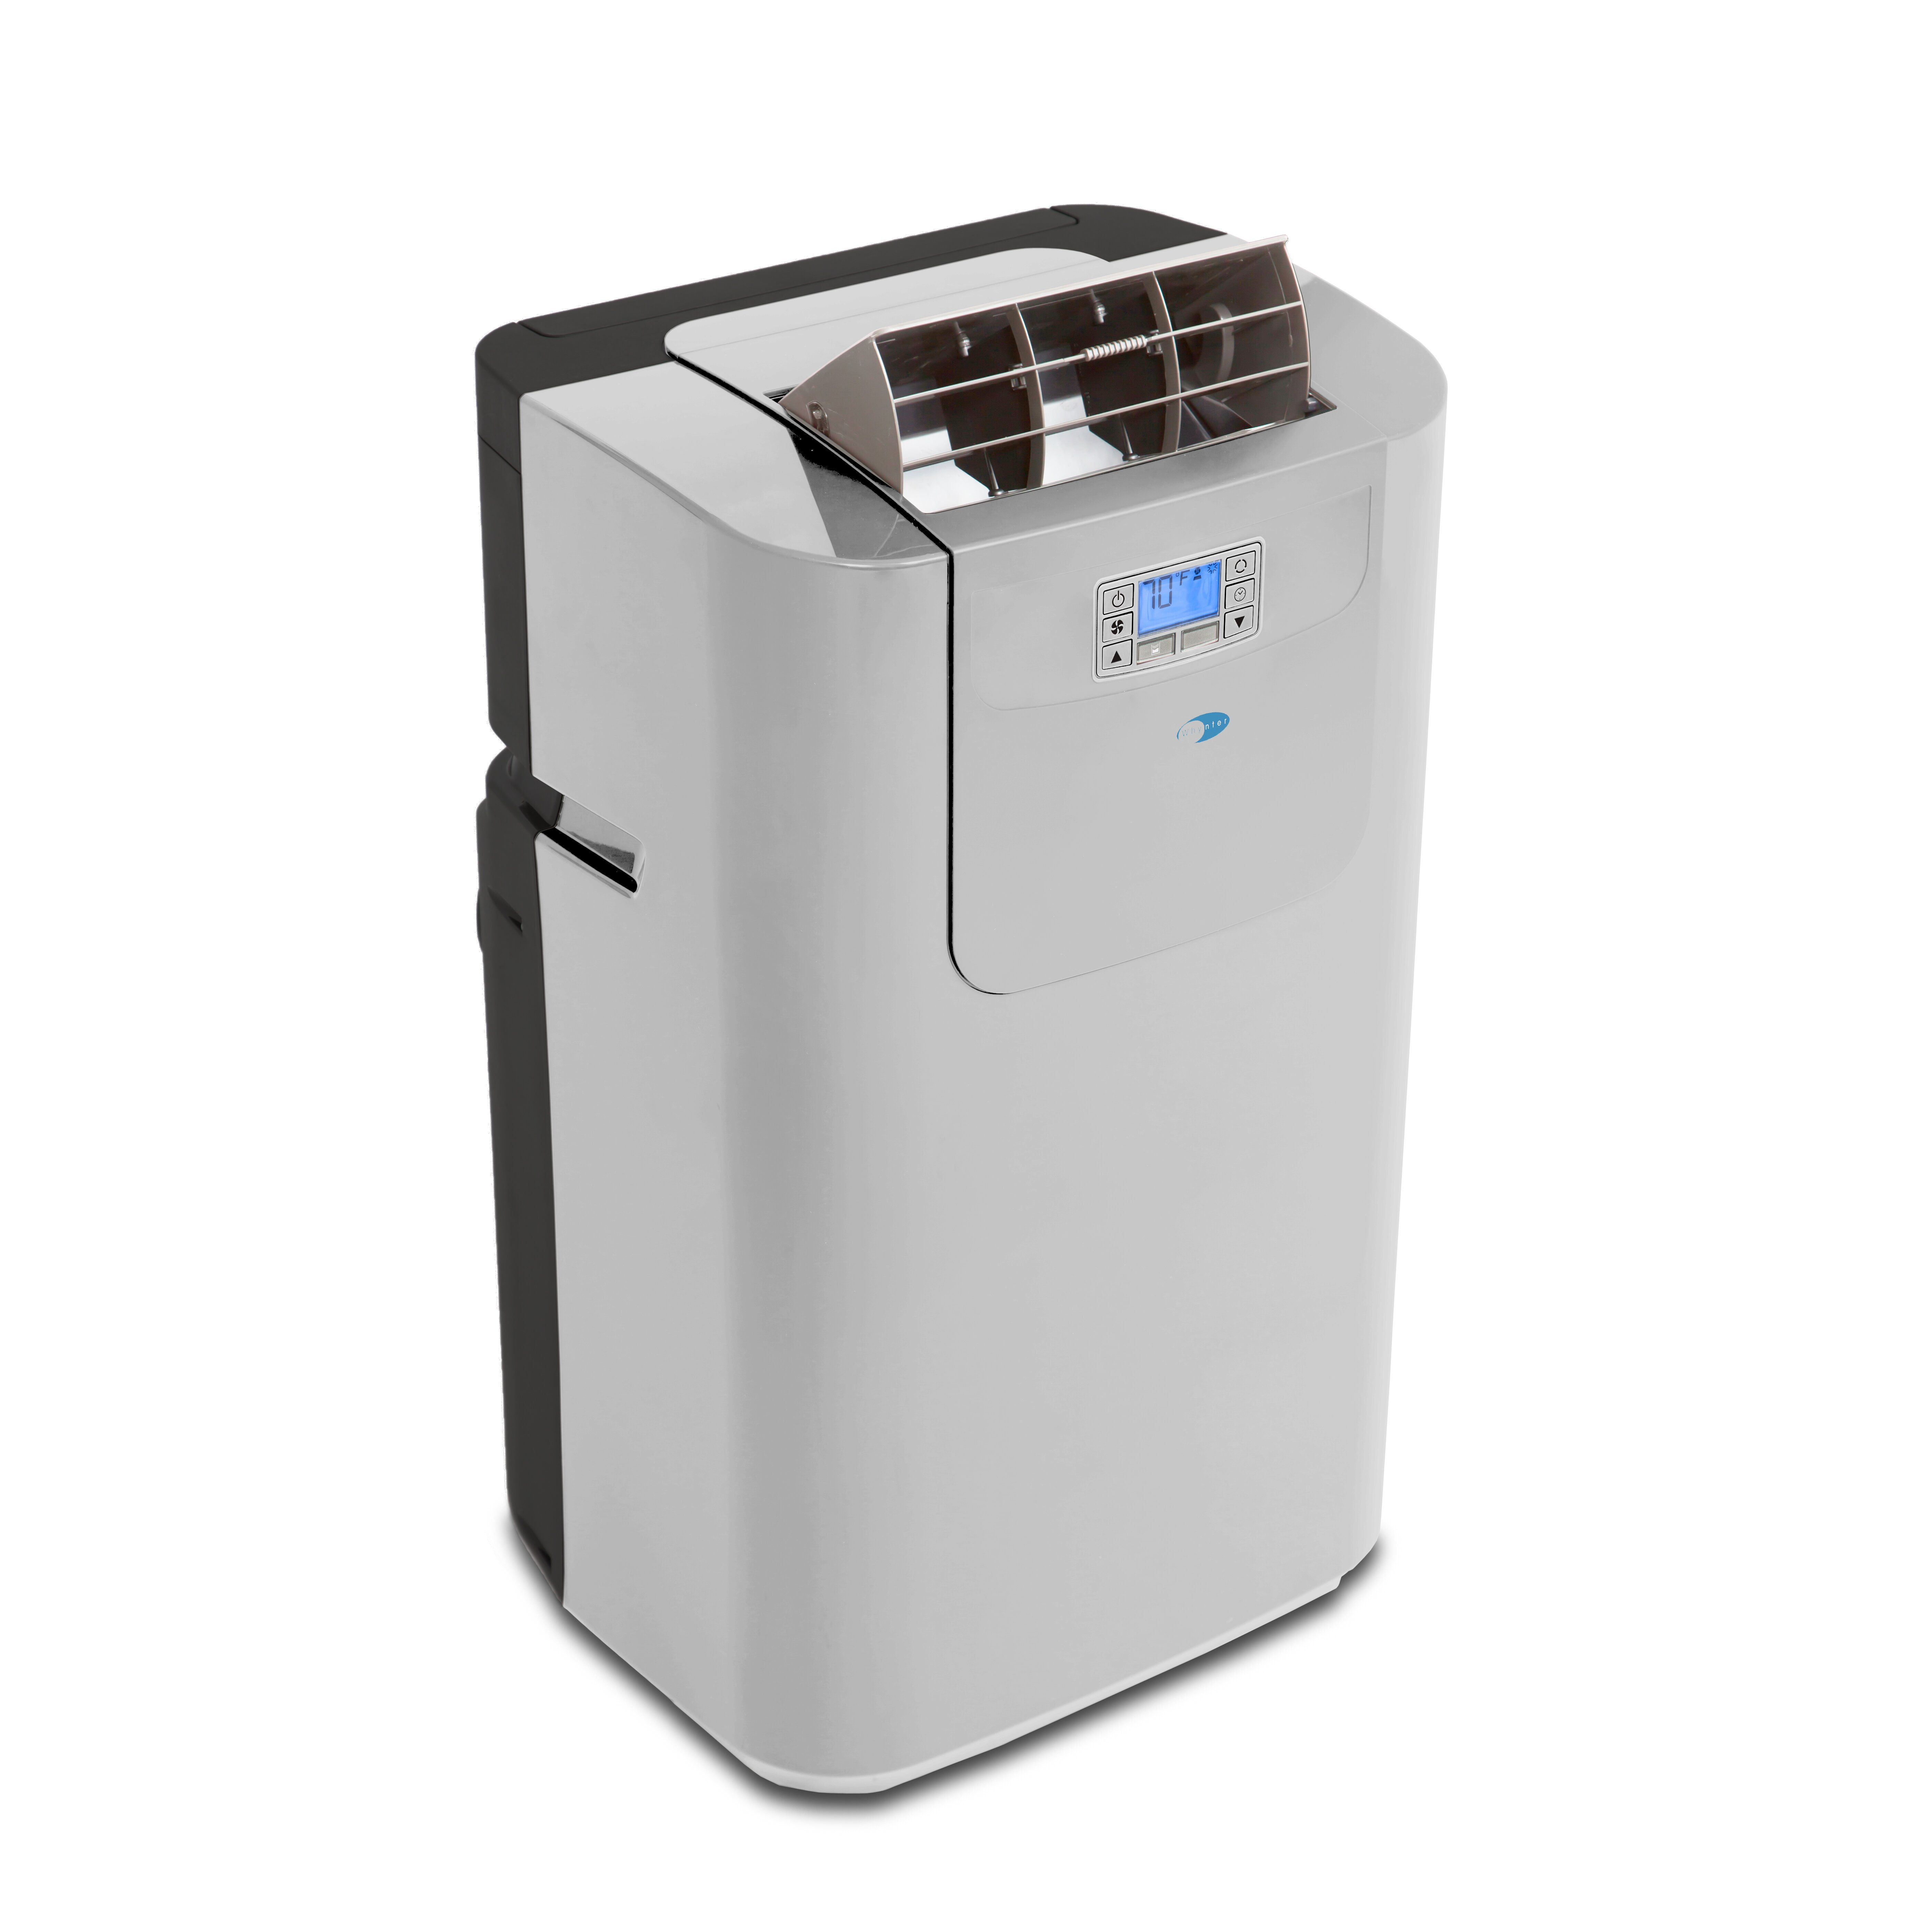 Heating & Cooling Portable Air Conditioners Whynter SKU: EJH1122 #1E58AD